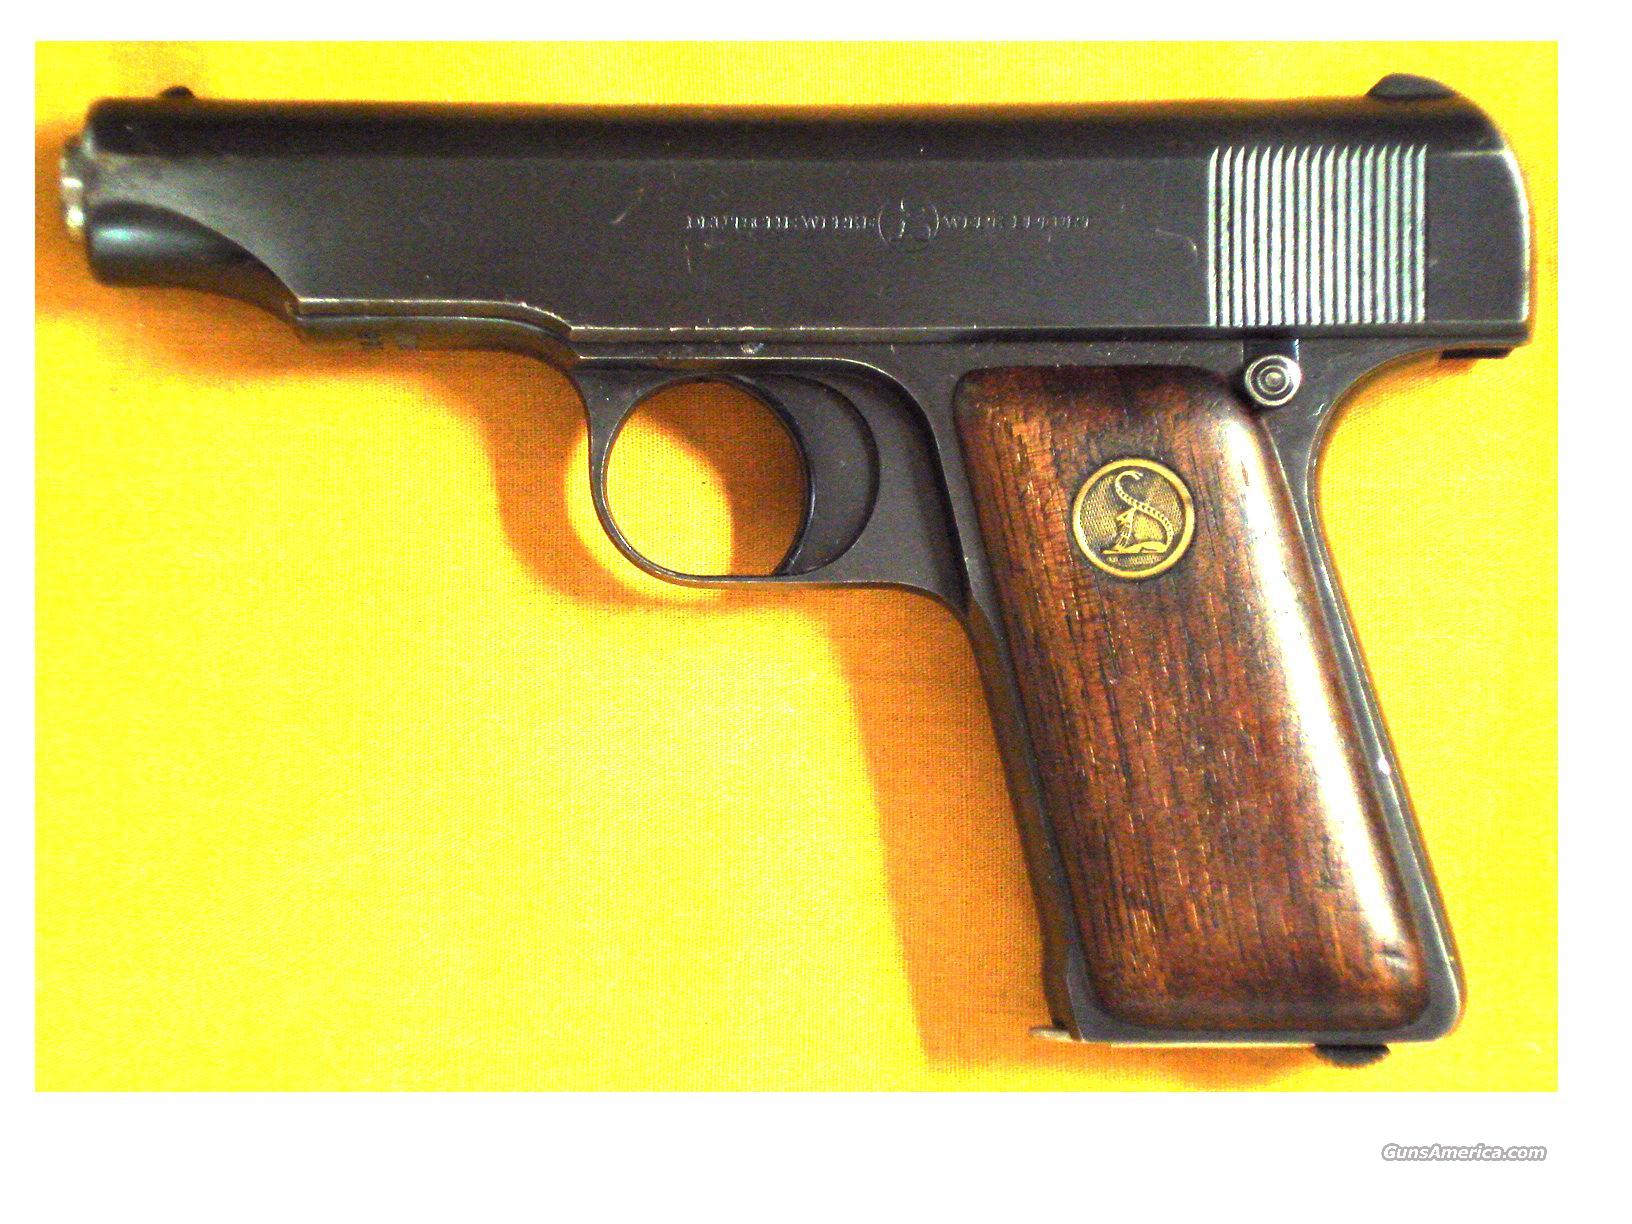 "ORTGIES POCKET .32ACP 3 1/2"" BARREL  Guns > Pistols > Ortgies Pistols"